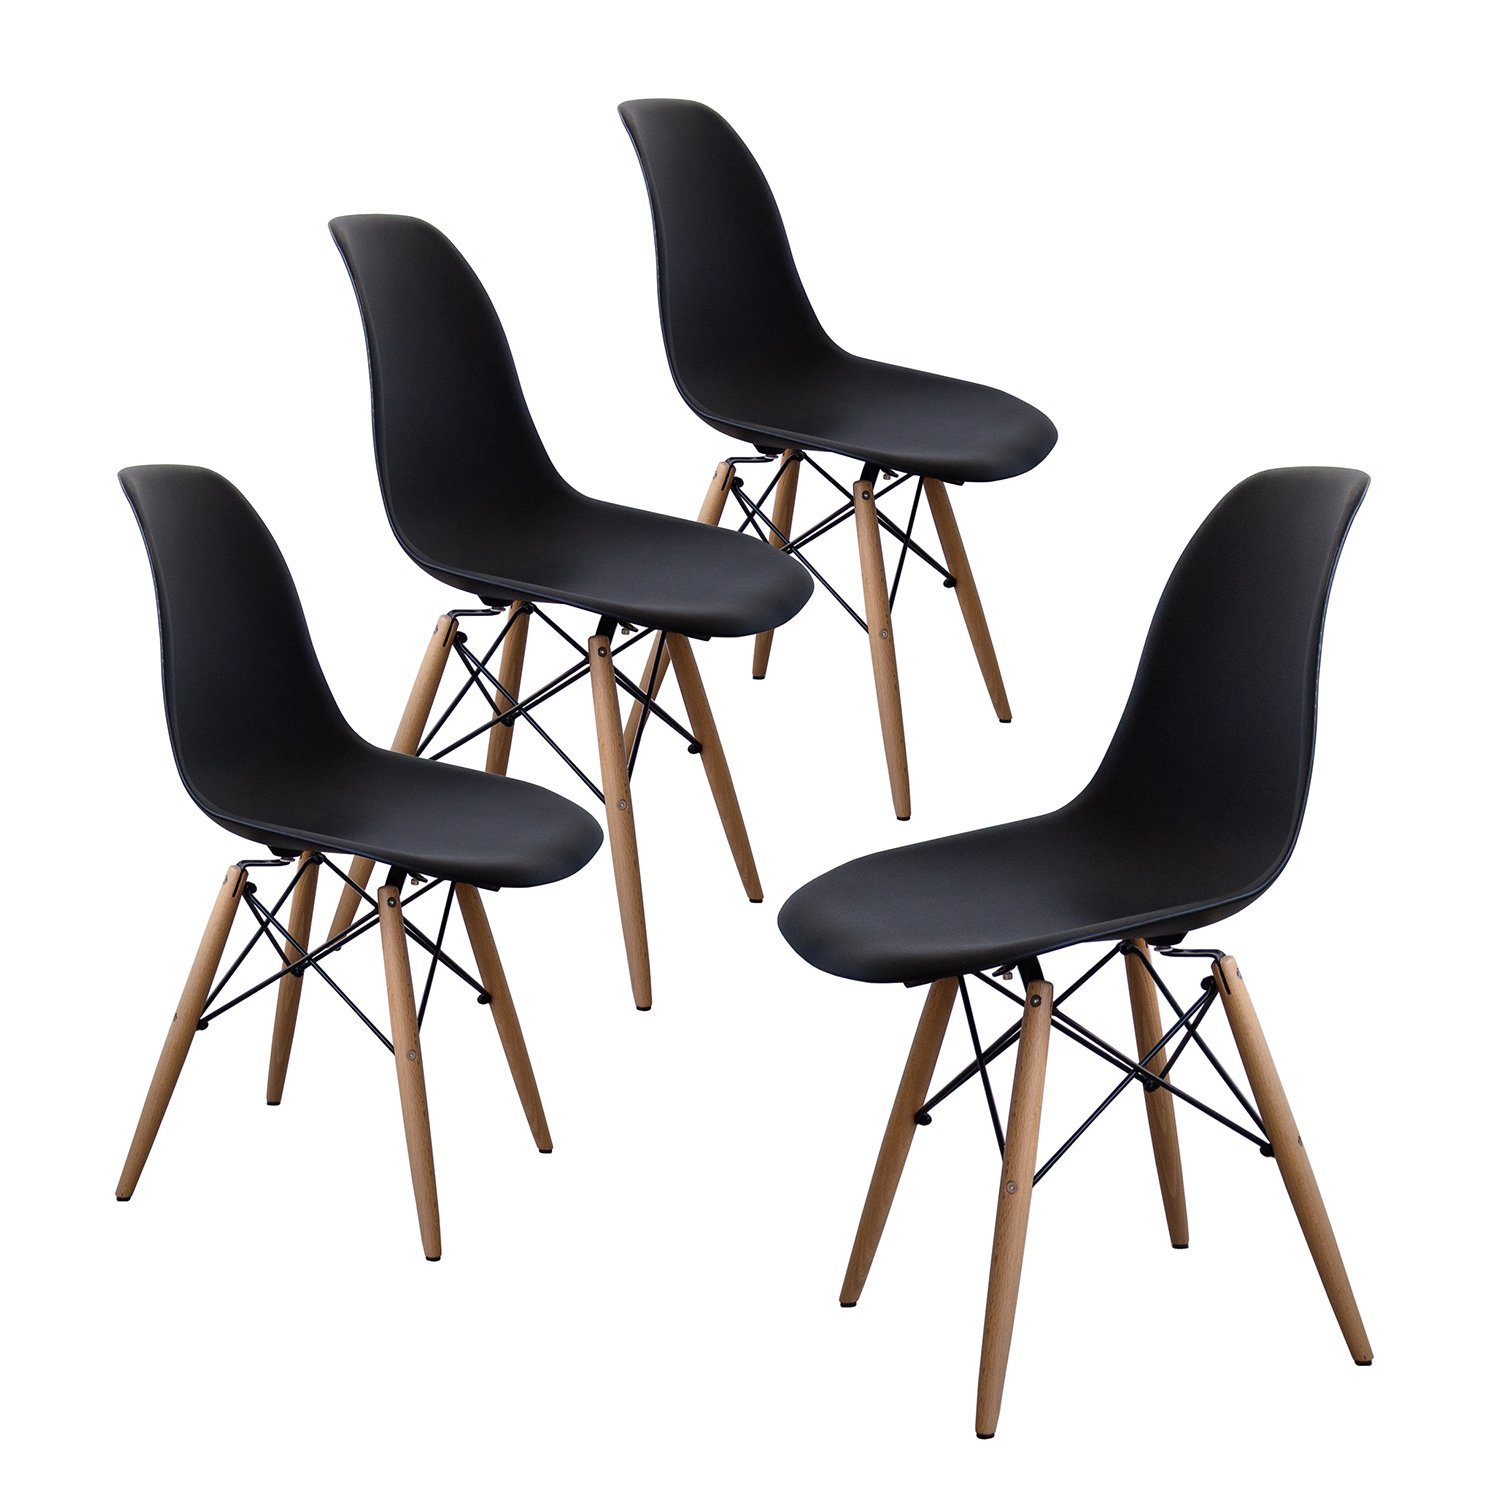 Buschman Set of Four Black Eames-Style Mid Century Modern Dining Room Wooden Legs Chairs